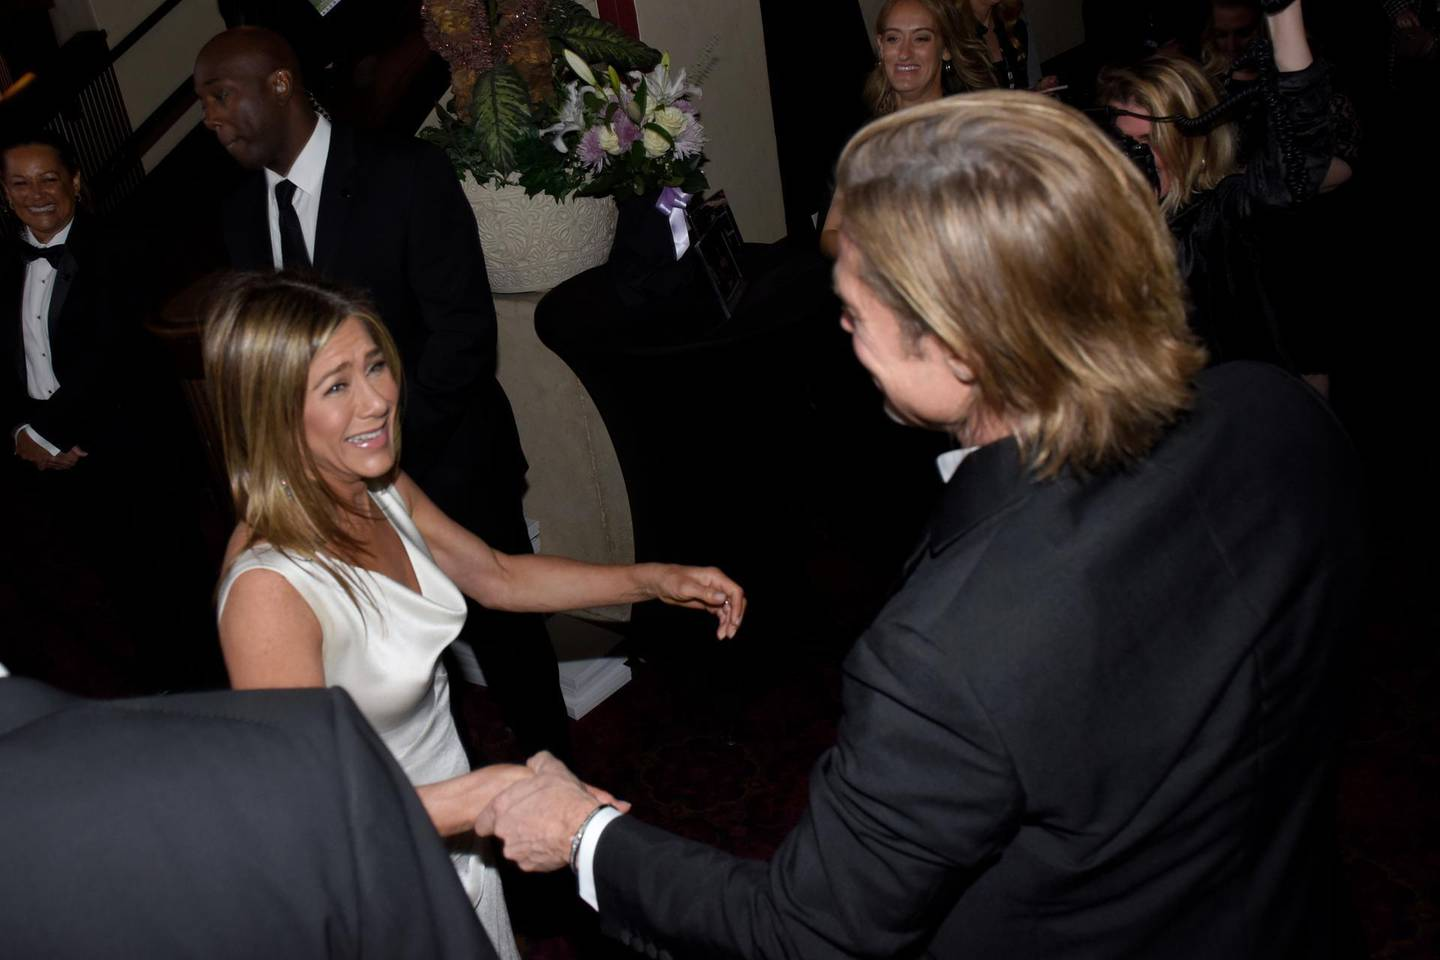 LOS ANGELES, CALIFORNIA - JANUARY 19: (EXCLUSIVE COVERAGE) Brad Pitt and Jennifer Aniston attend the 26th Annual Screen Actors Guild Awards at The Shrine Auditorium on January 19, 2020 in Los Angeles, California.   Vivien Killilea/Getty Images for SAG-AFTRA Foundation/AFP